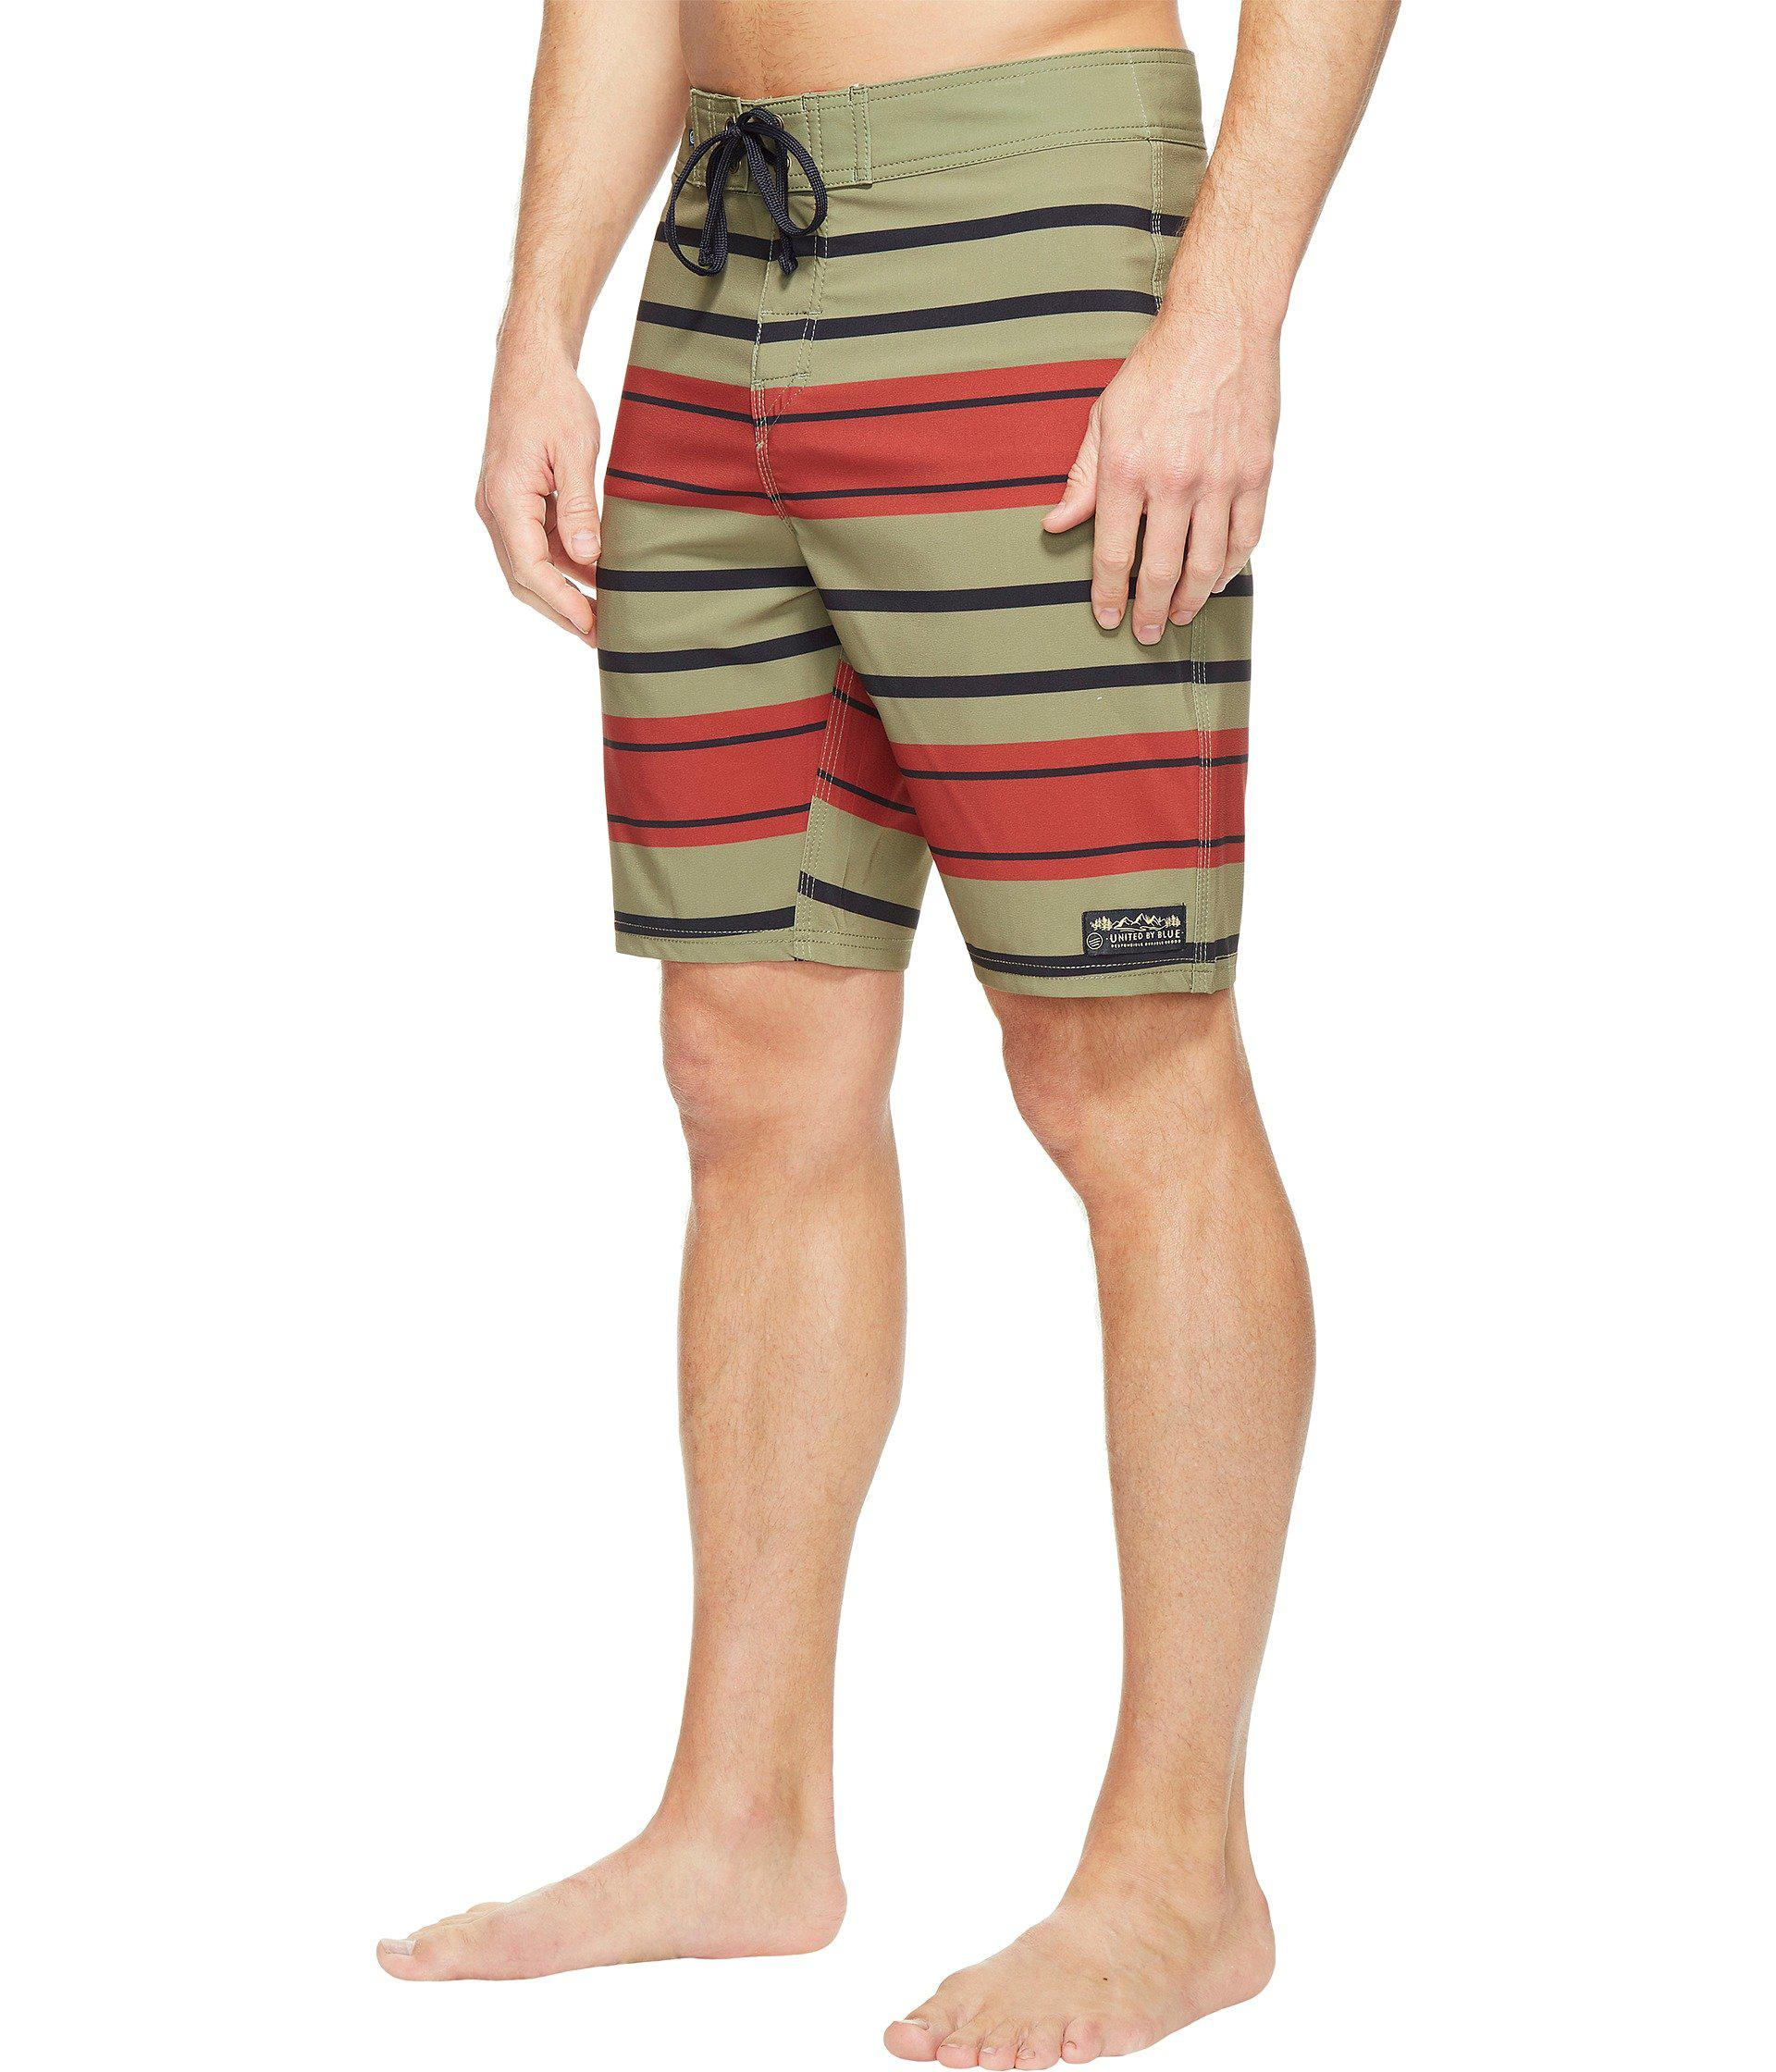 04c7803346 Lyst - United By Blue Streamline Boardshorts in Green for Men - Save 39%